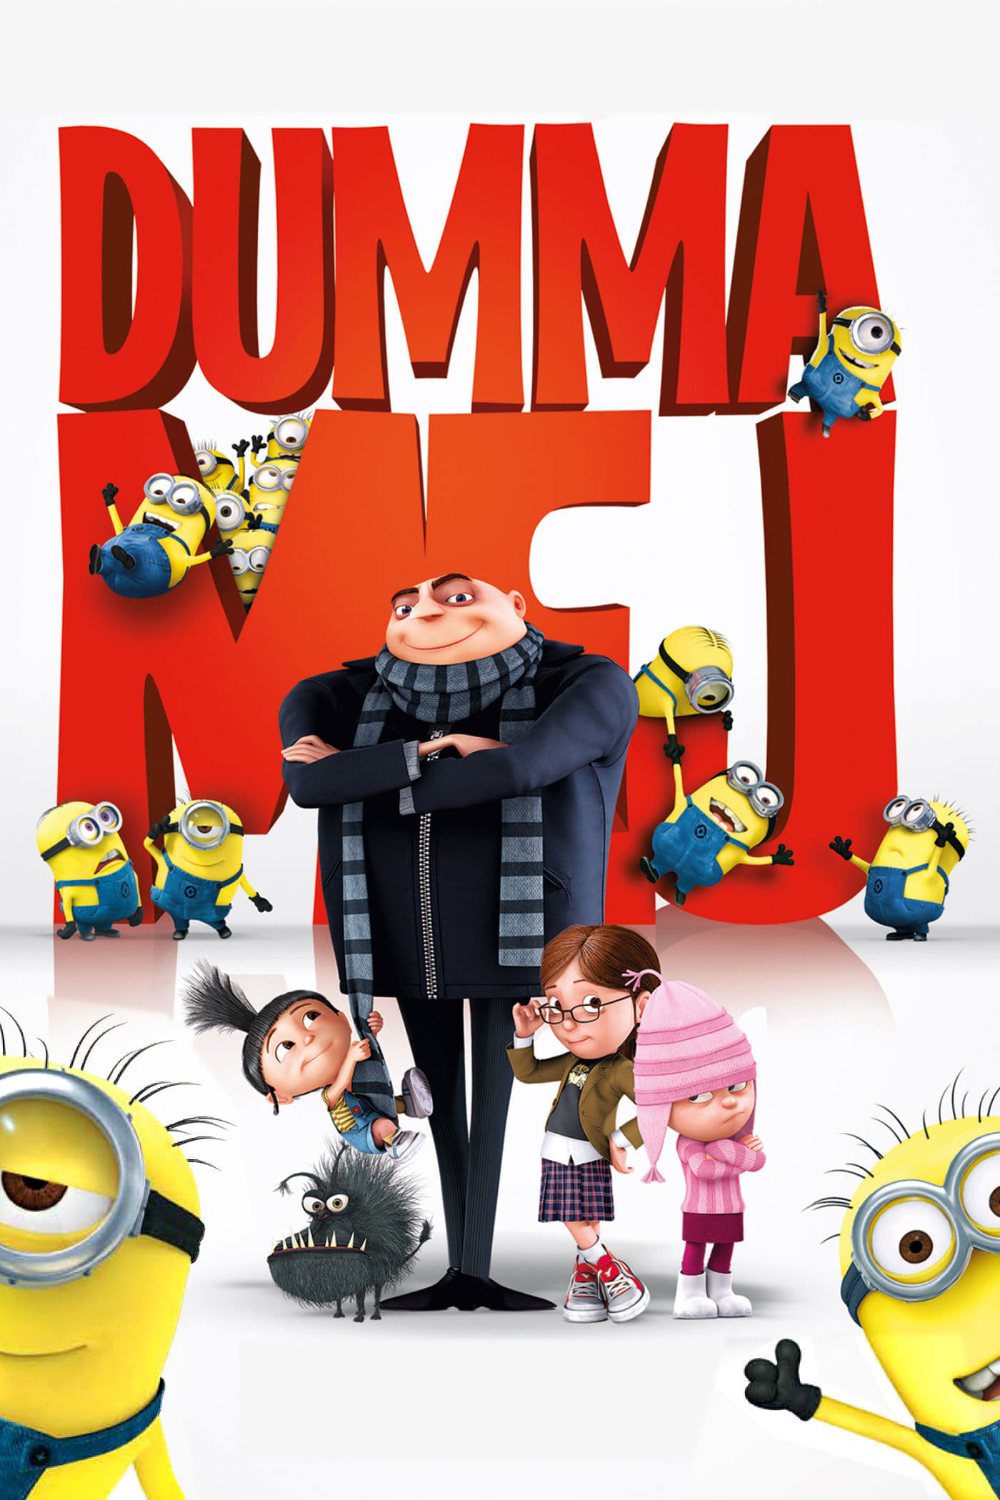 Dispicable Me Full Movies Online Free Despicable Me Free Movies Online